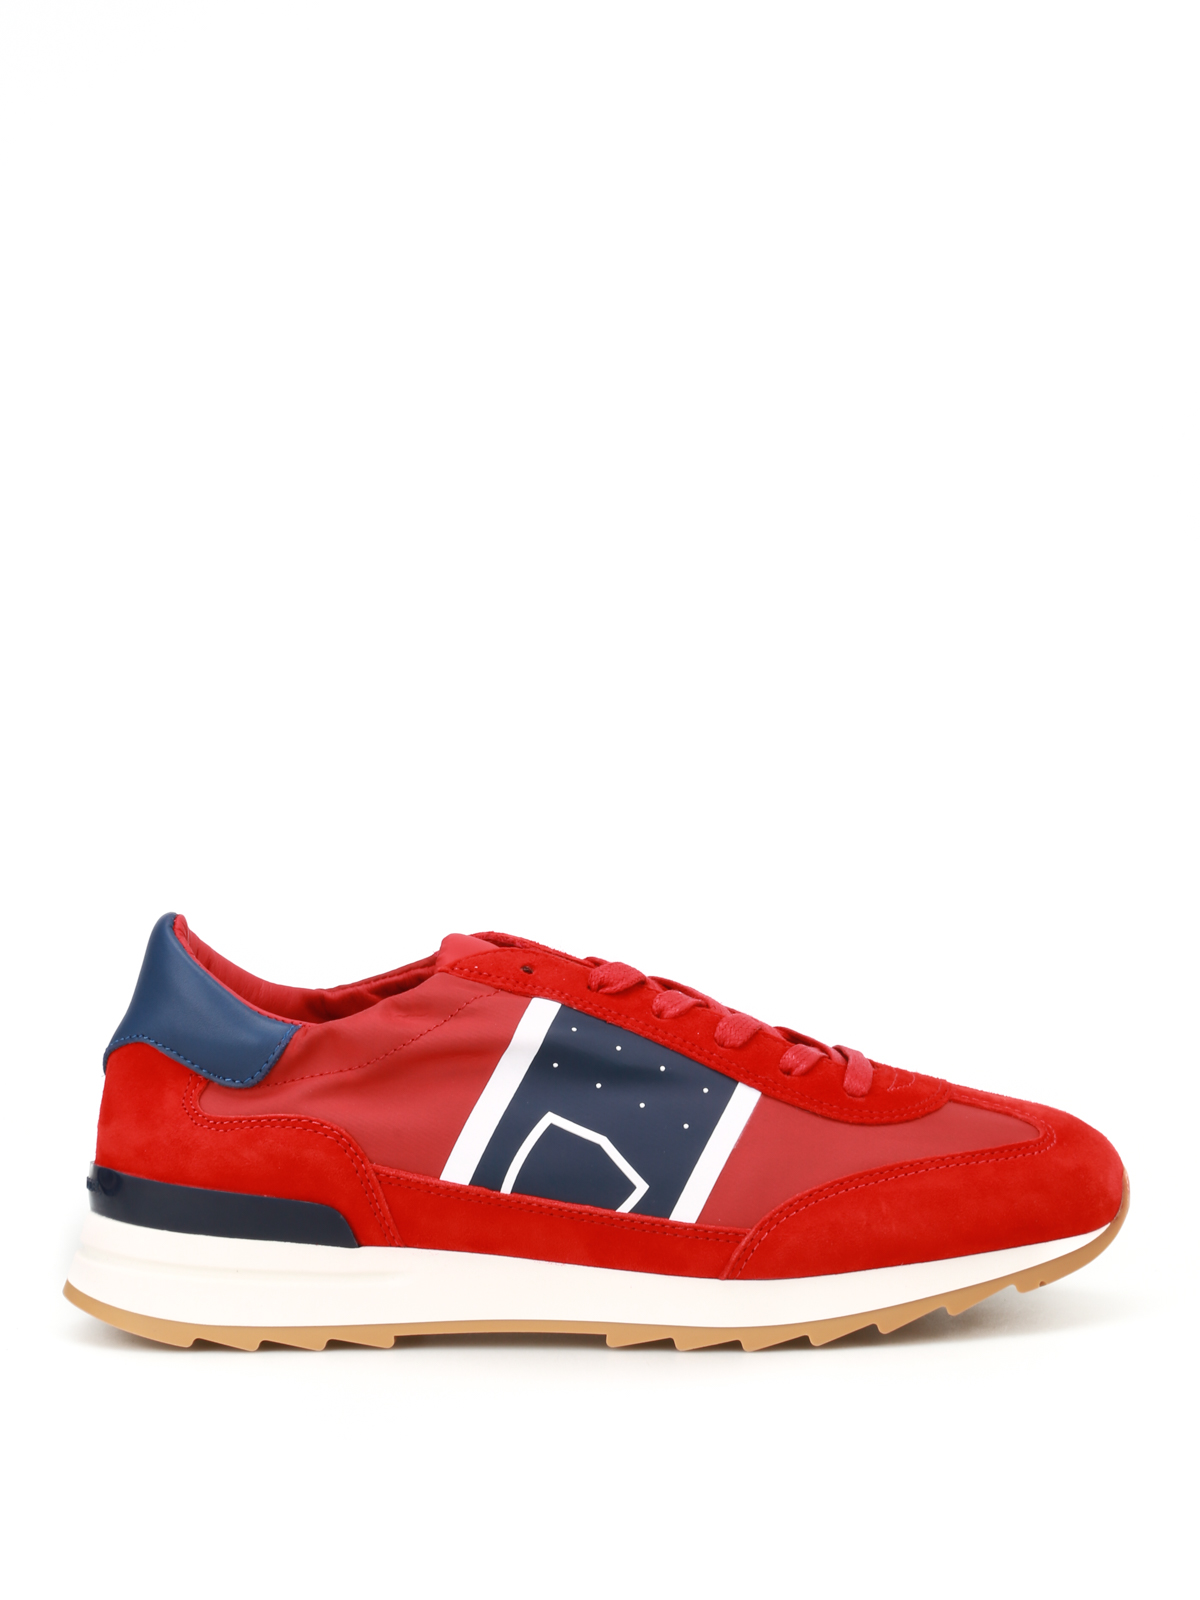 designer fashion f07b9 95a53 philippe-model-trainers-toujours-red-sneakers-00000123600f00s001.jpg